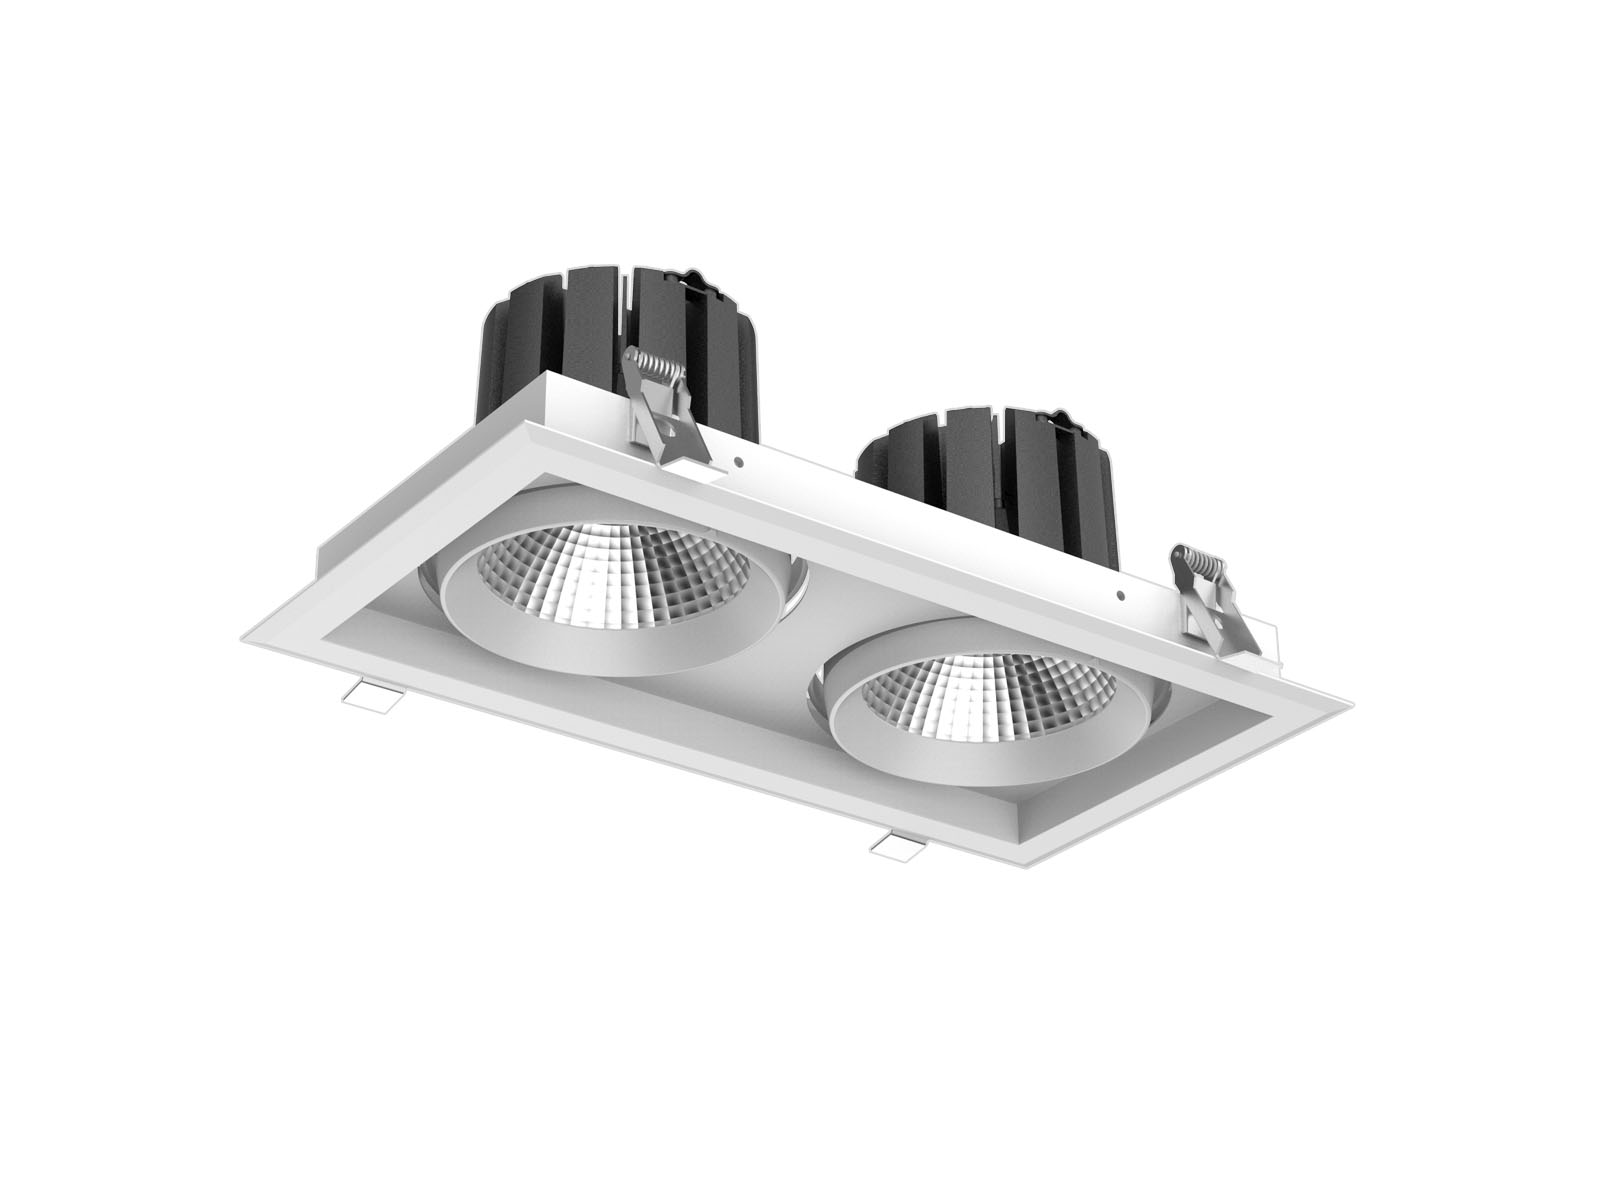 CL99 1 Office Led Downlight